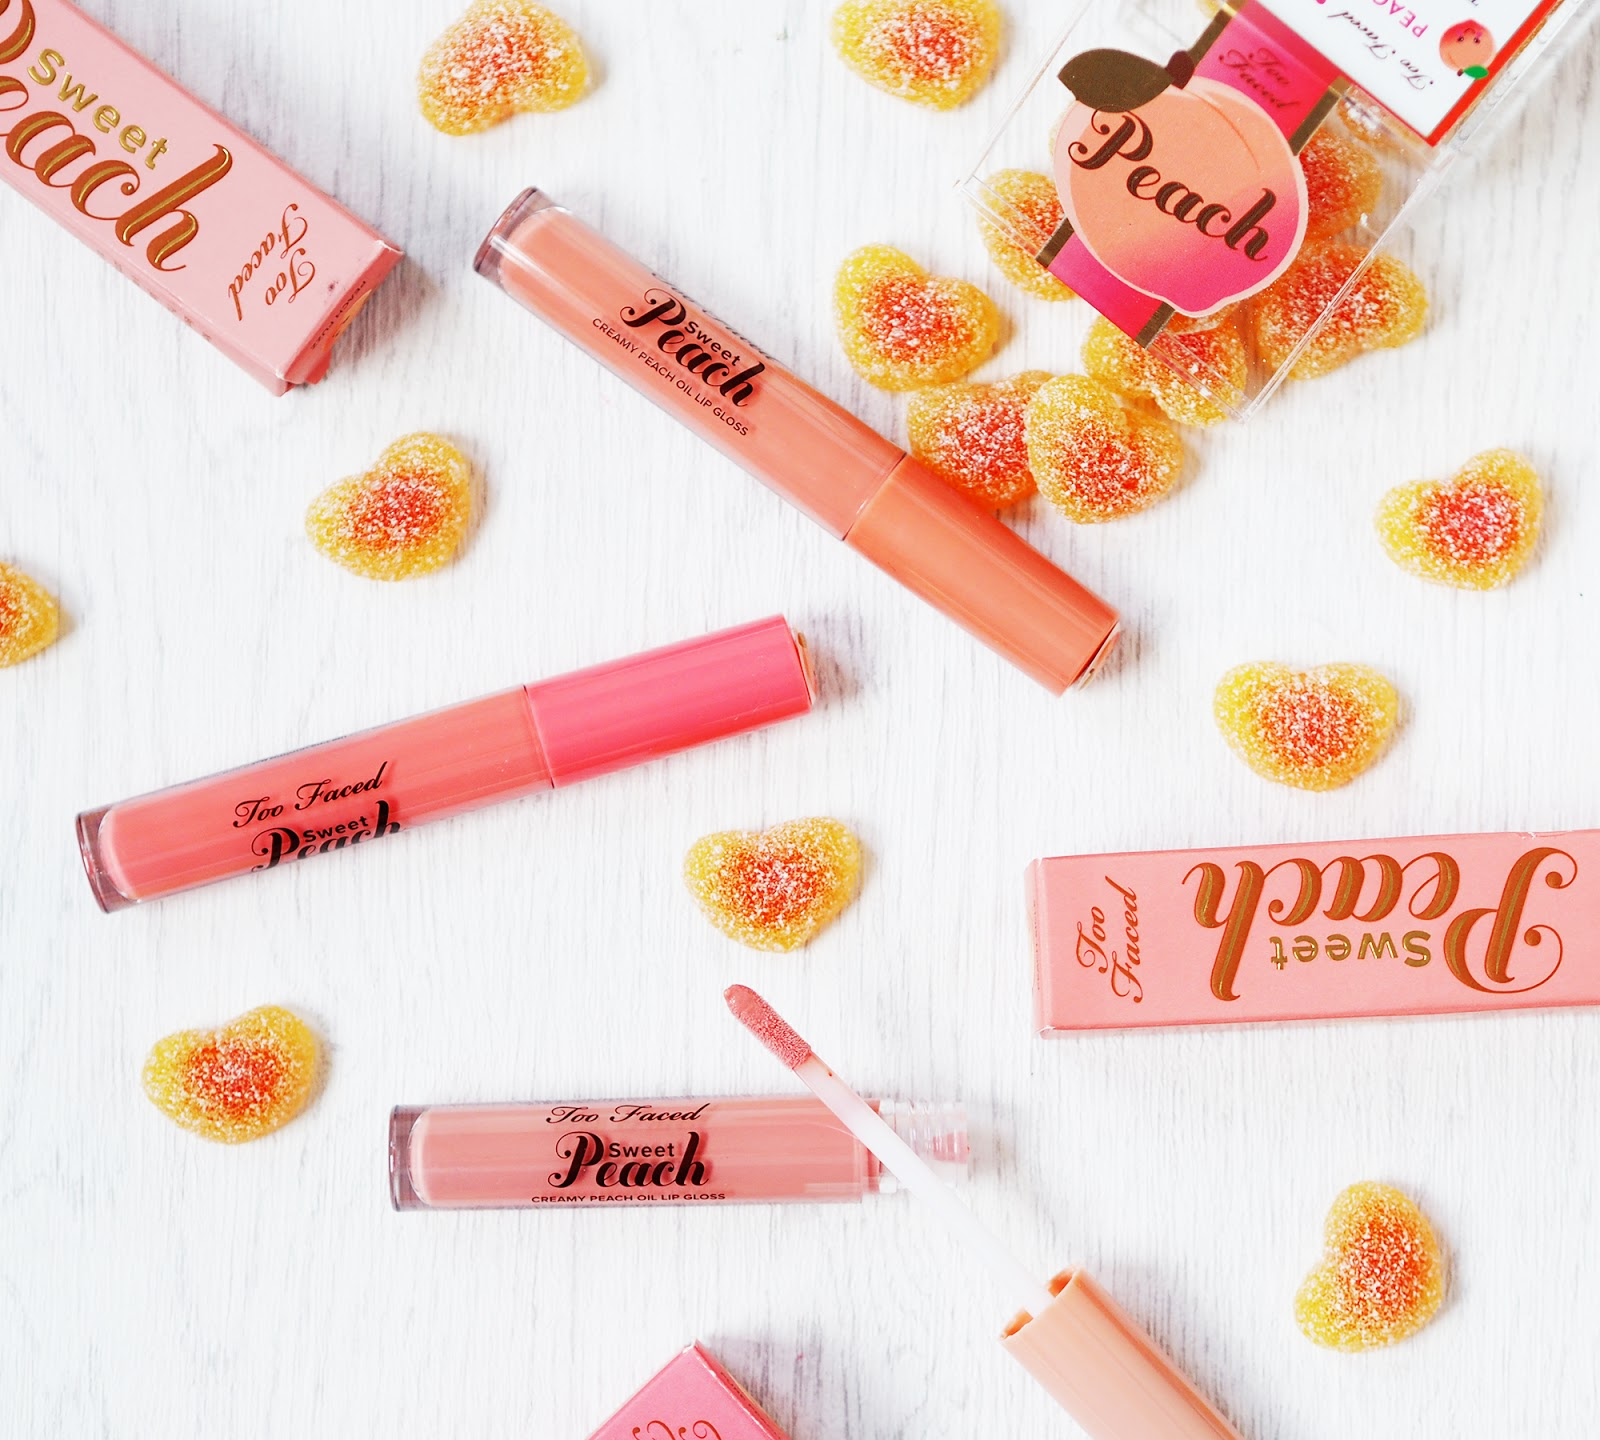 Too Faced Sweet Peach Lip Oil Glosses review